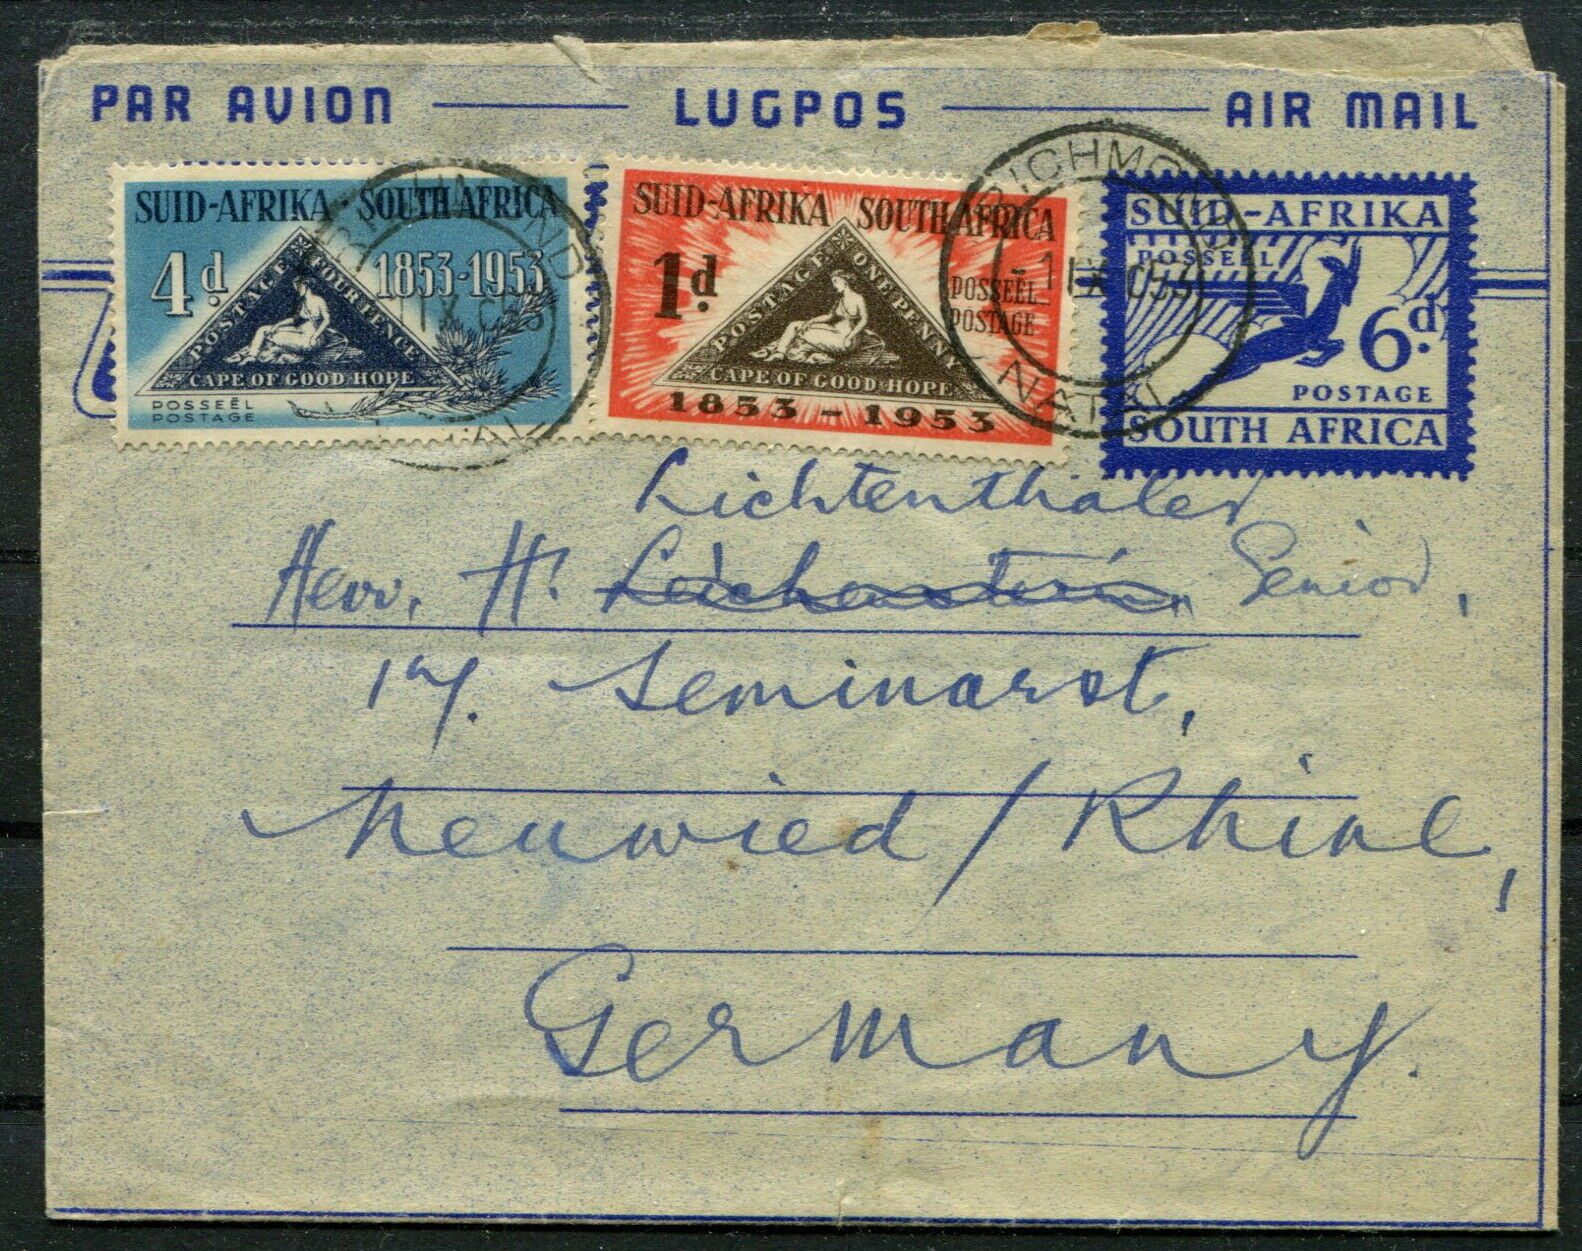 Süd-Afrika Lupo Air Mail GA mit ZF Richmond ~ Neuwied